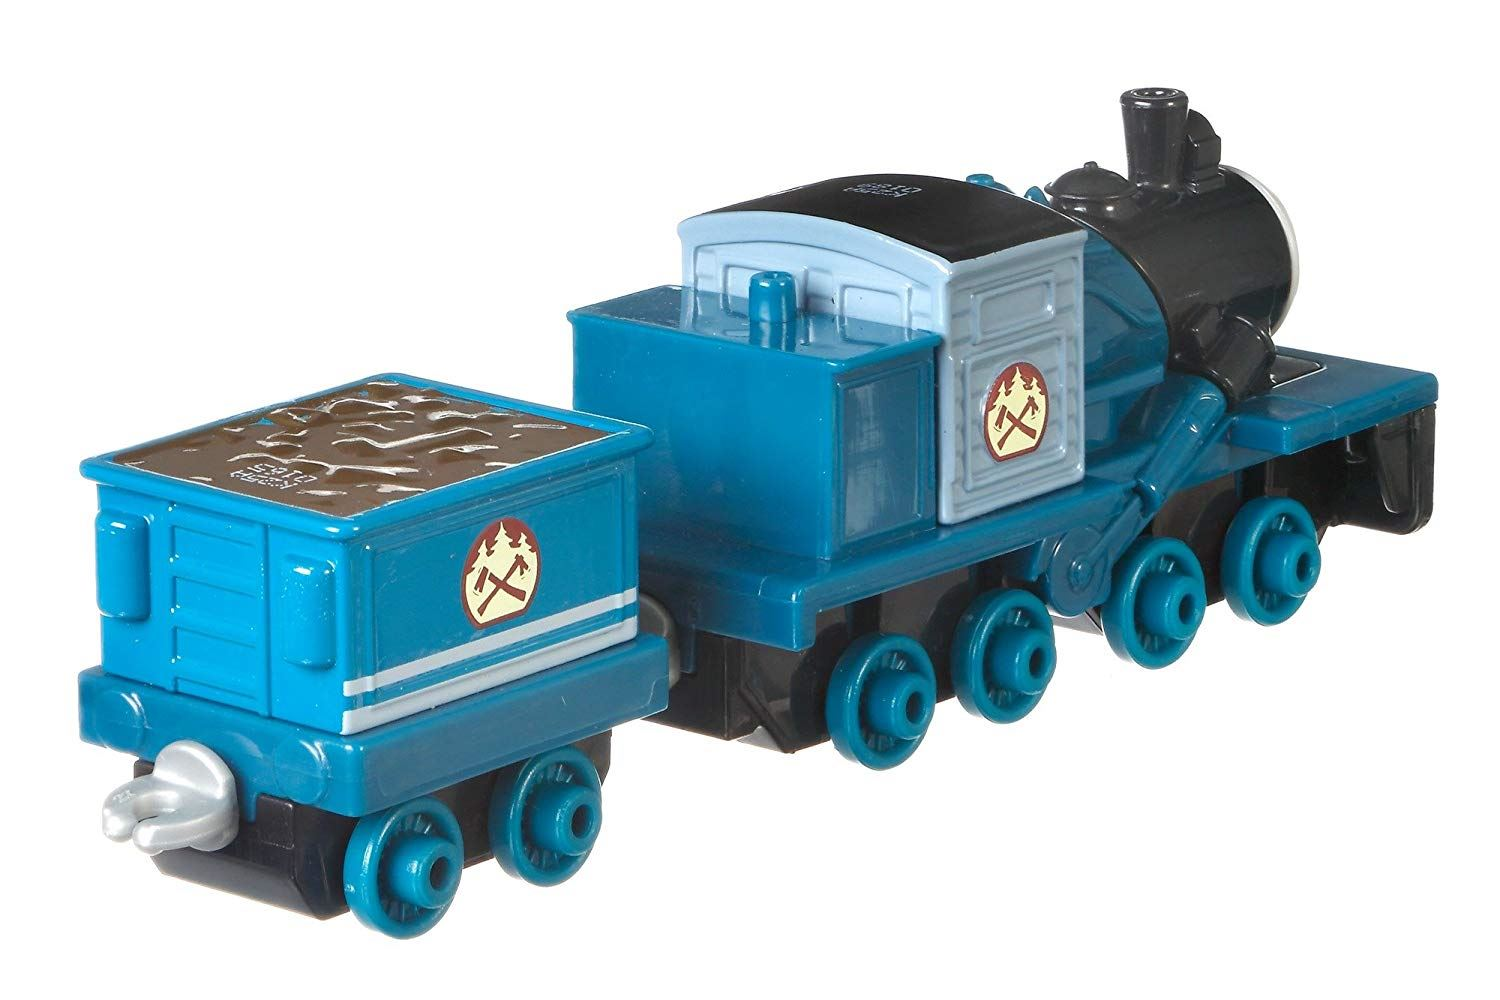 Thomas-amp-Friends-Adventures-Ferdinand-lexi-Shane-Dash-Huge-Bill-Trains Indexbild 15